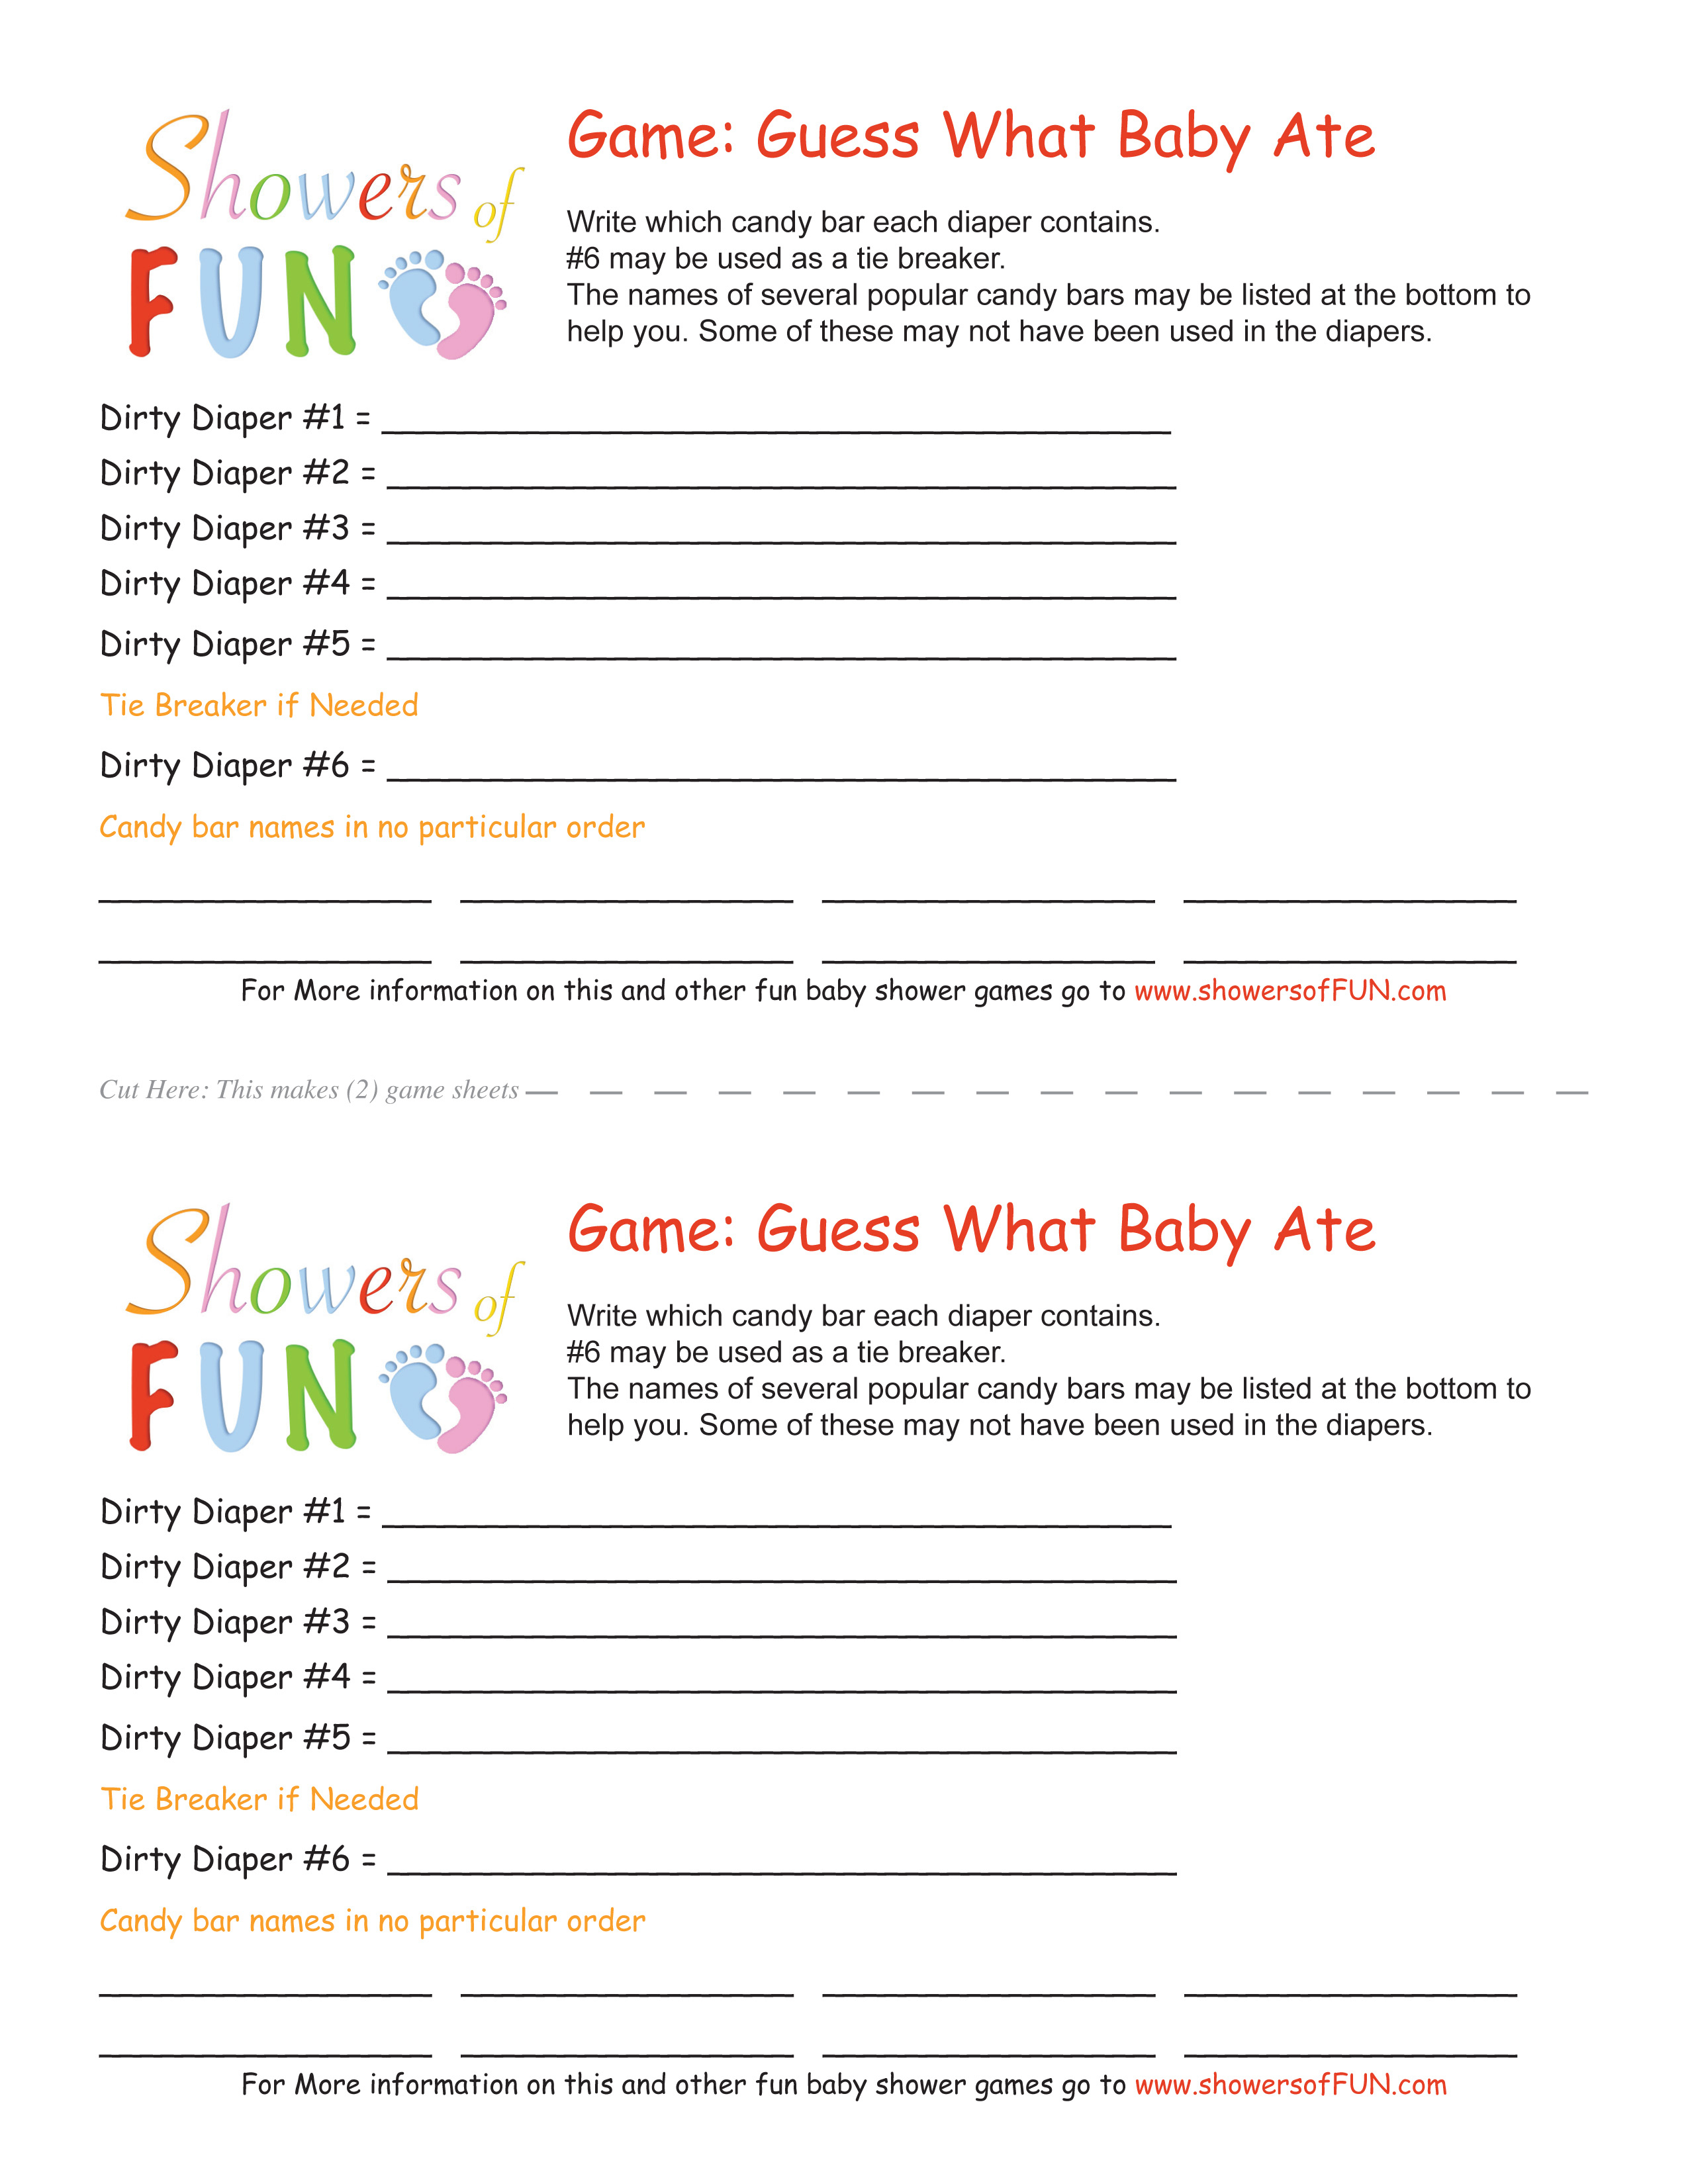 Guess What The Baby Ate - Candy Bar Dirty Diaper Game - Candy Bar Baby Shower Game Free Printable